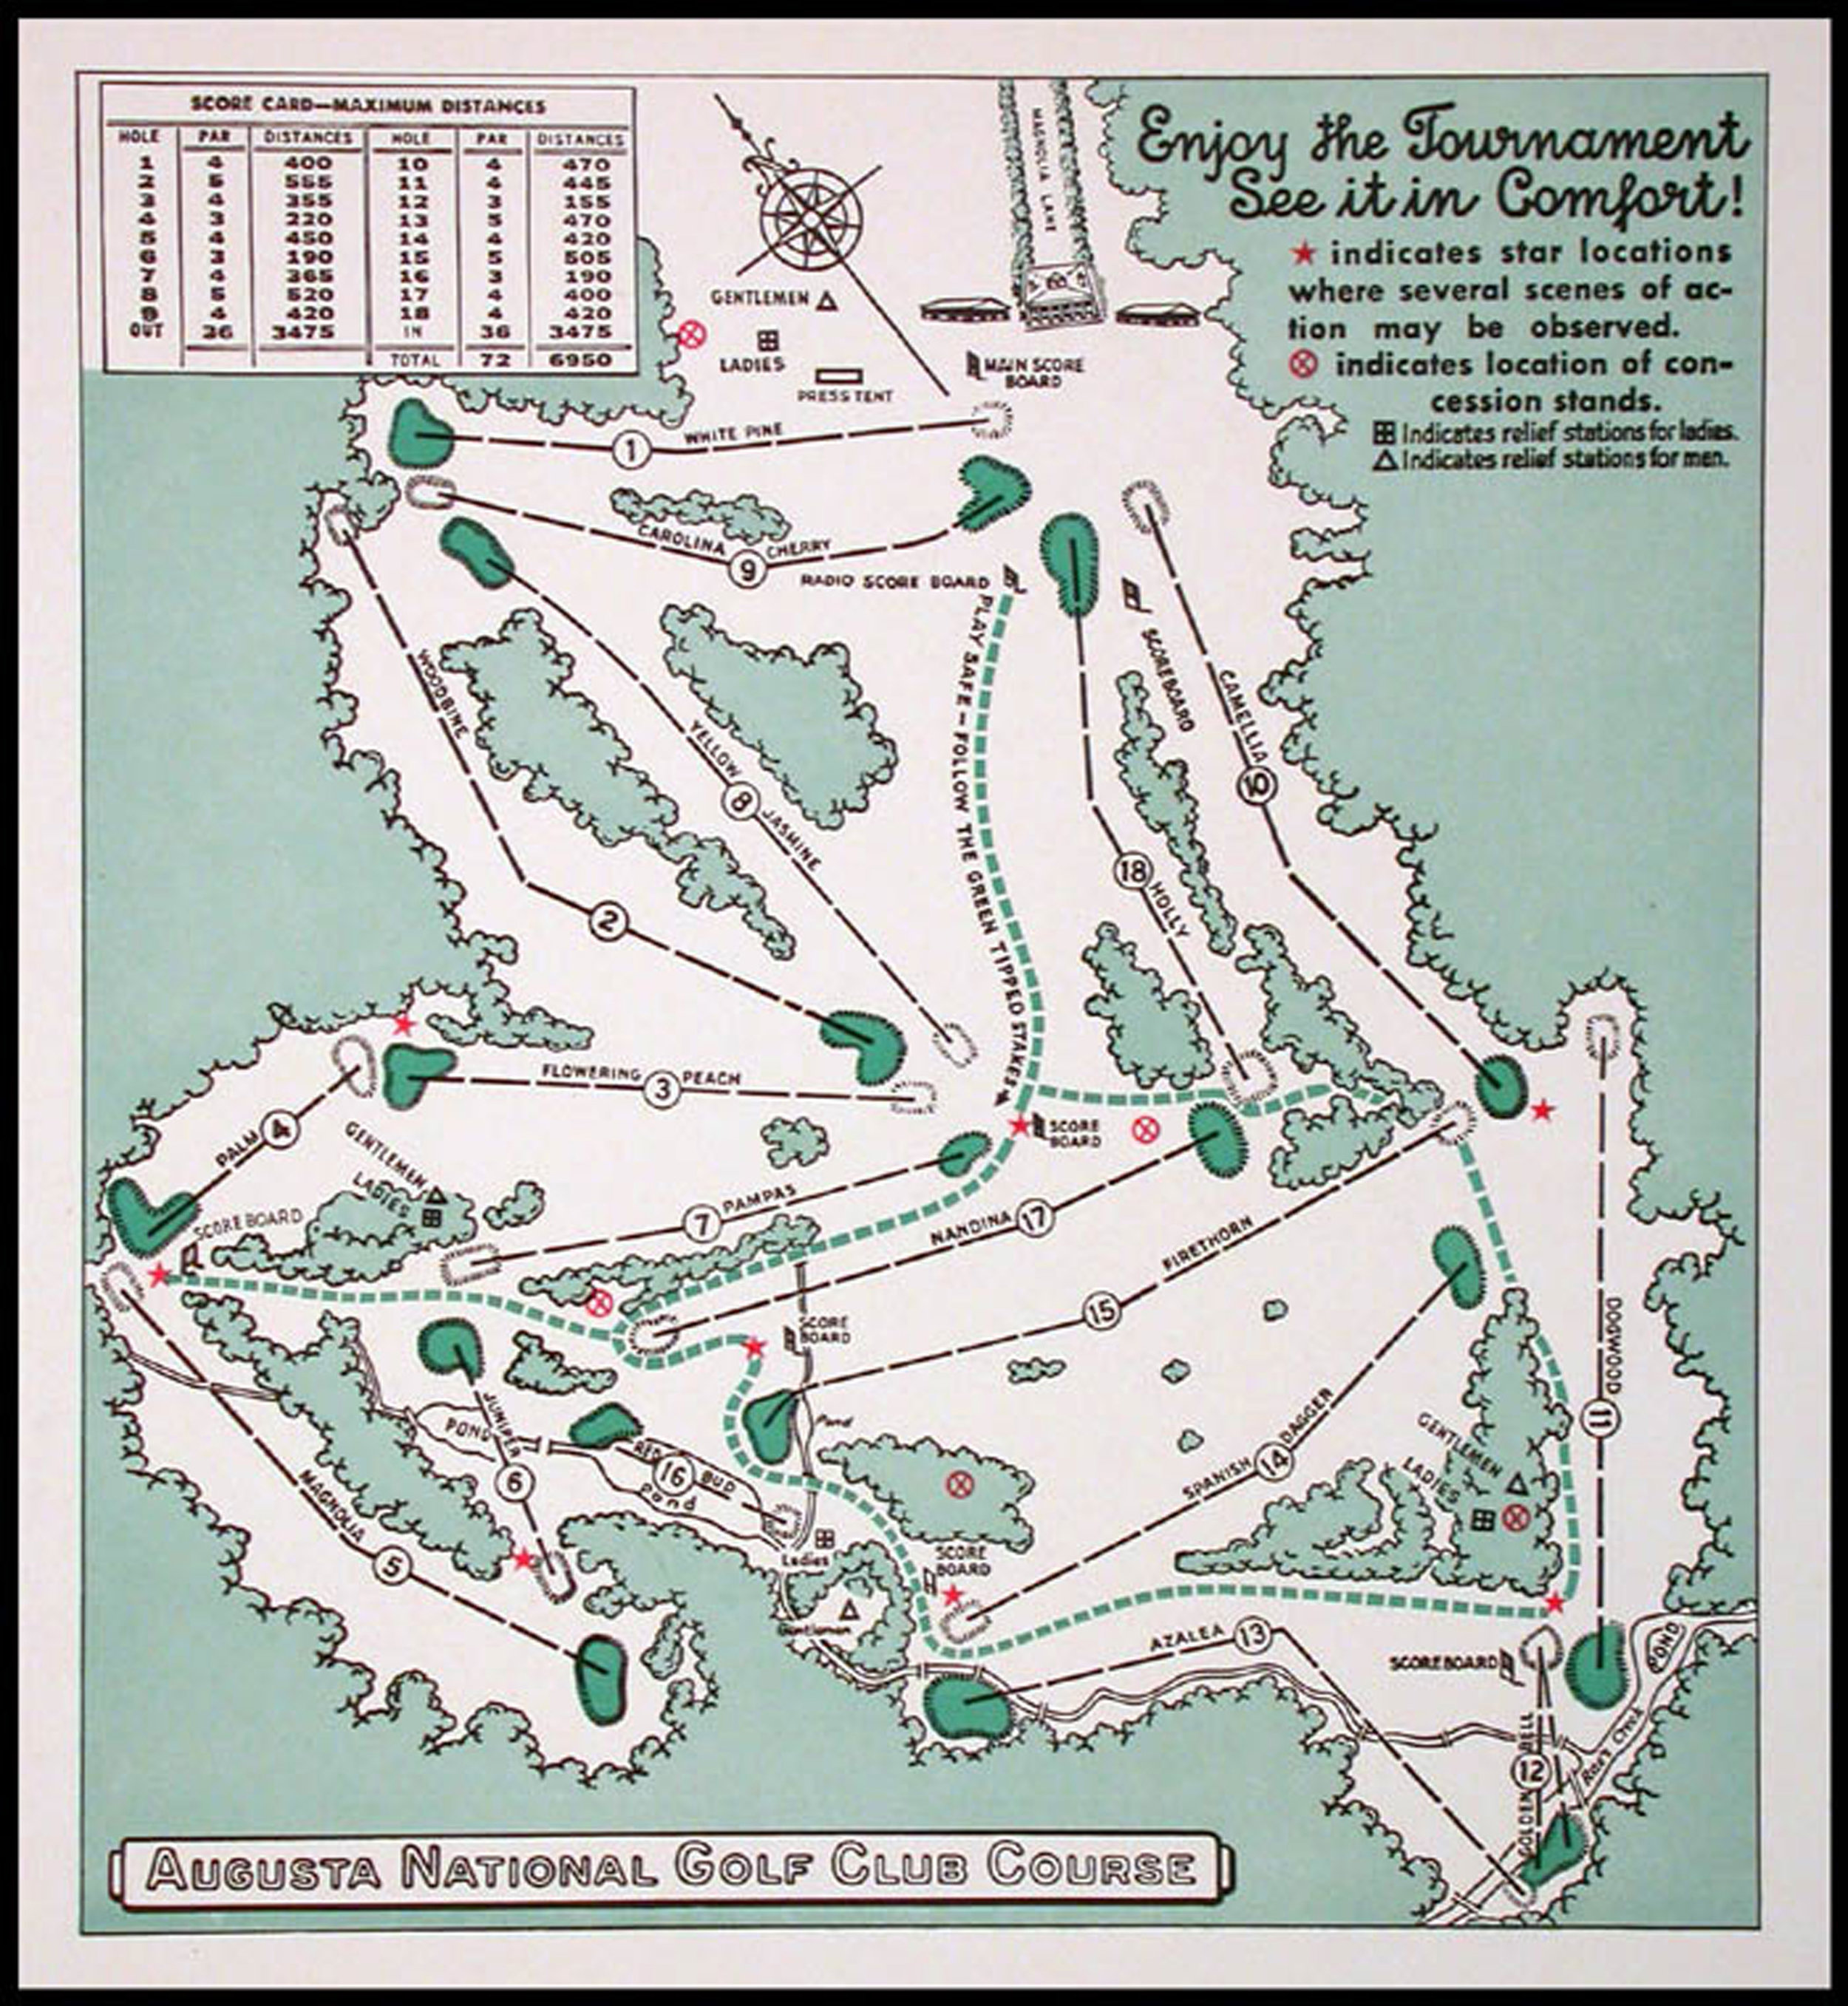 A map of the Augusta National course for the 1940 Masters Tournament.